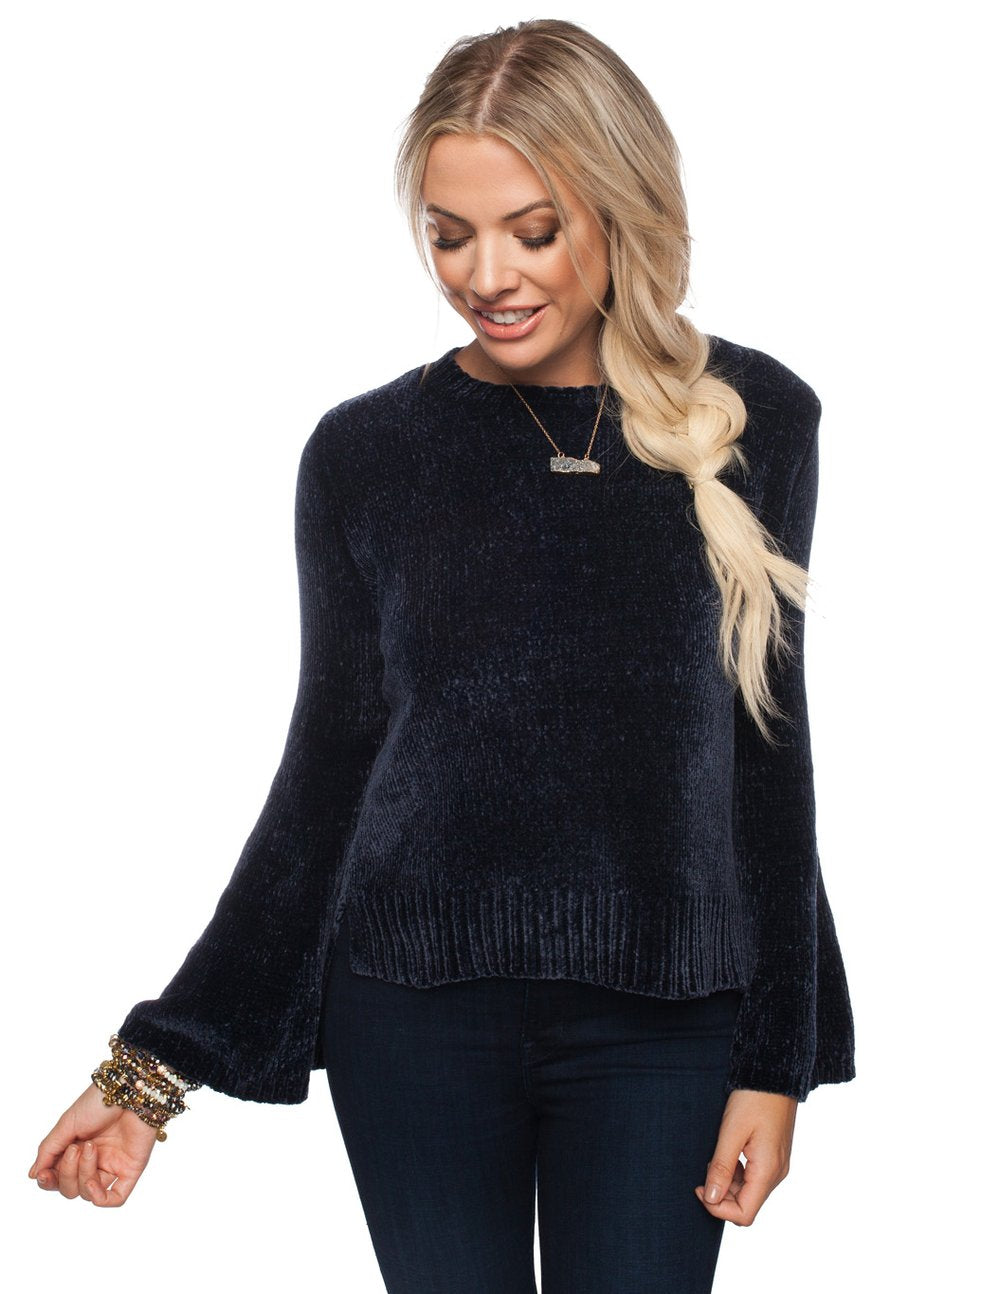 Diane Sweater in Slate